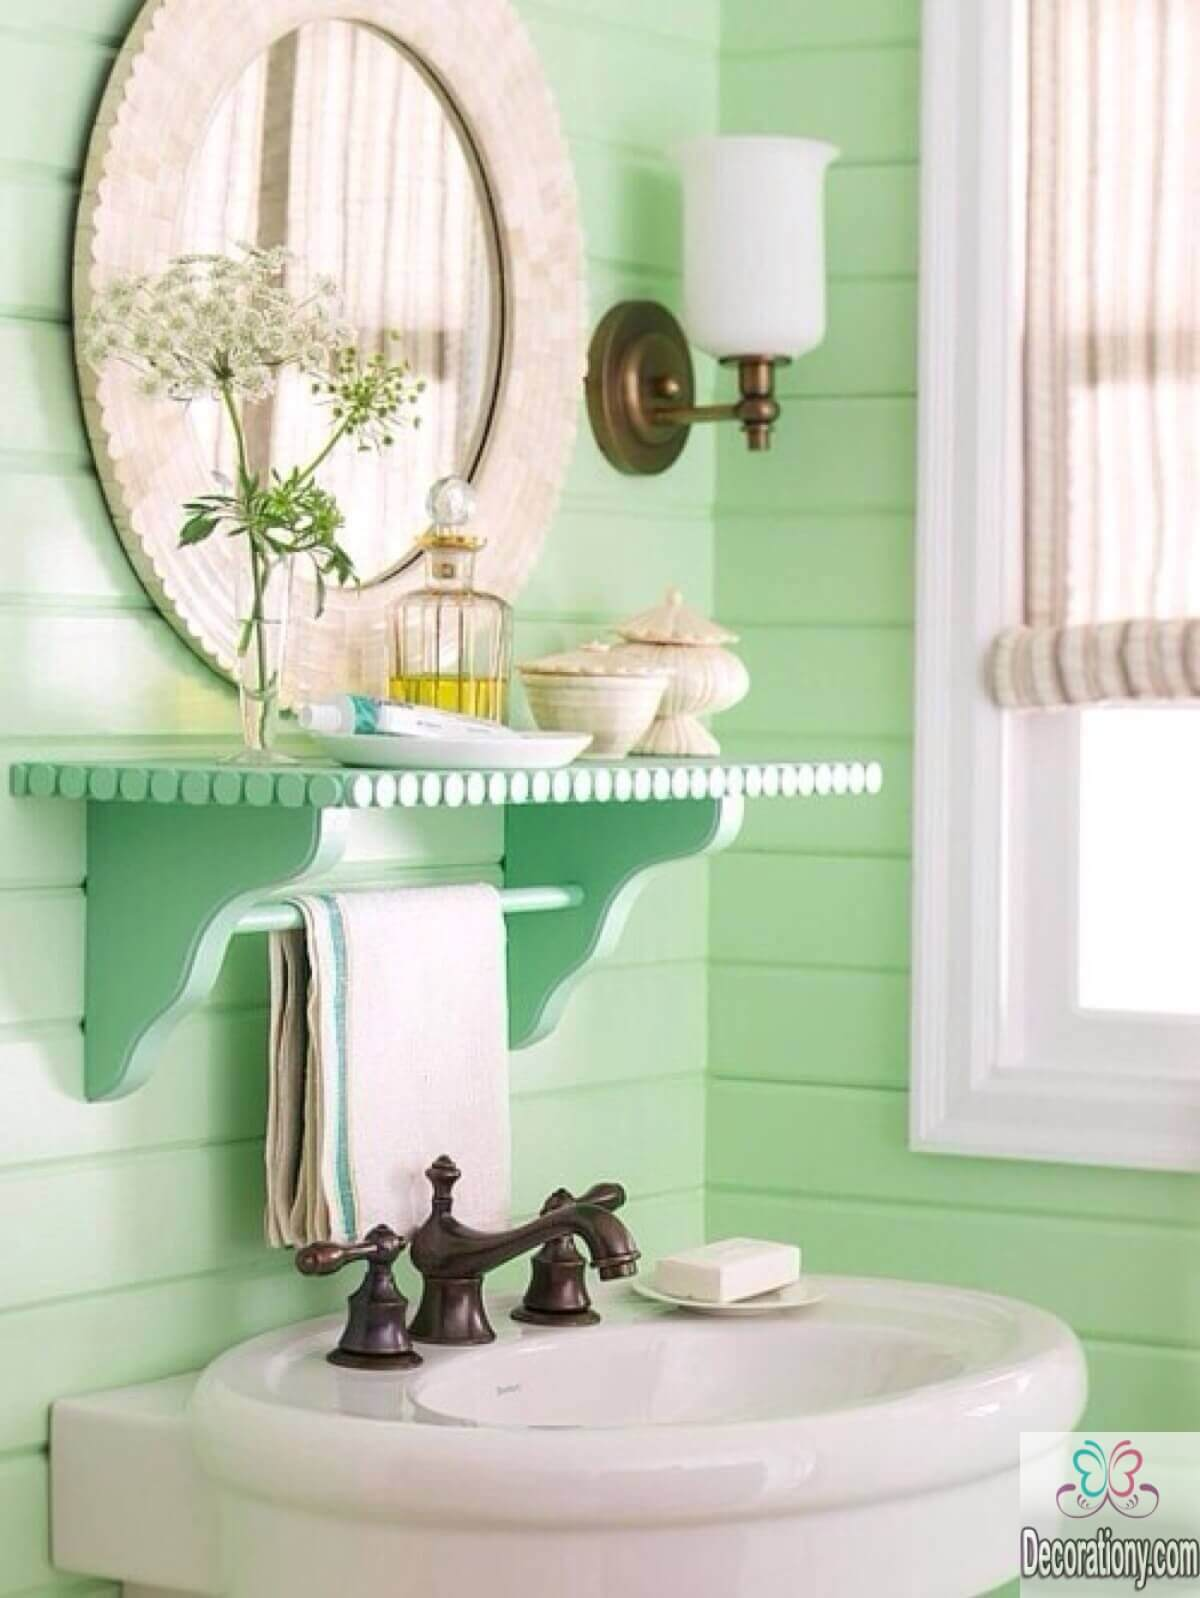 10 affordable colors for small bathrooms decoration y for Bathroom decor colors